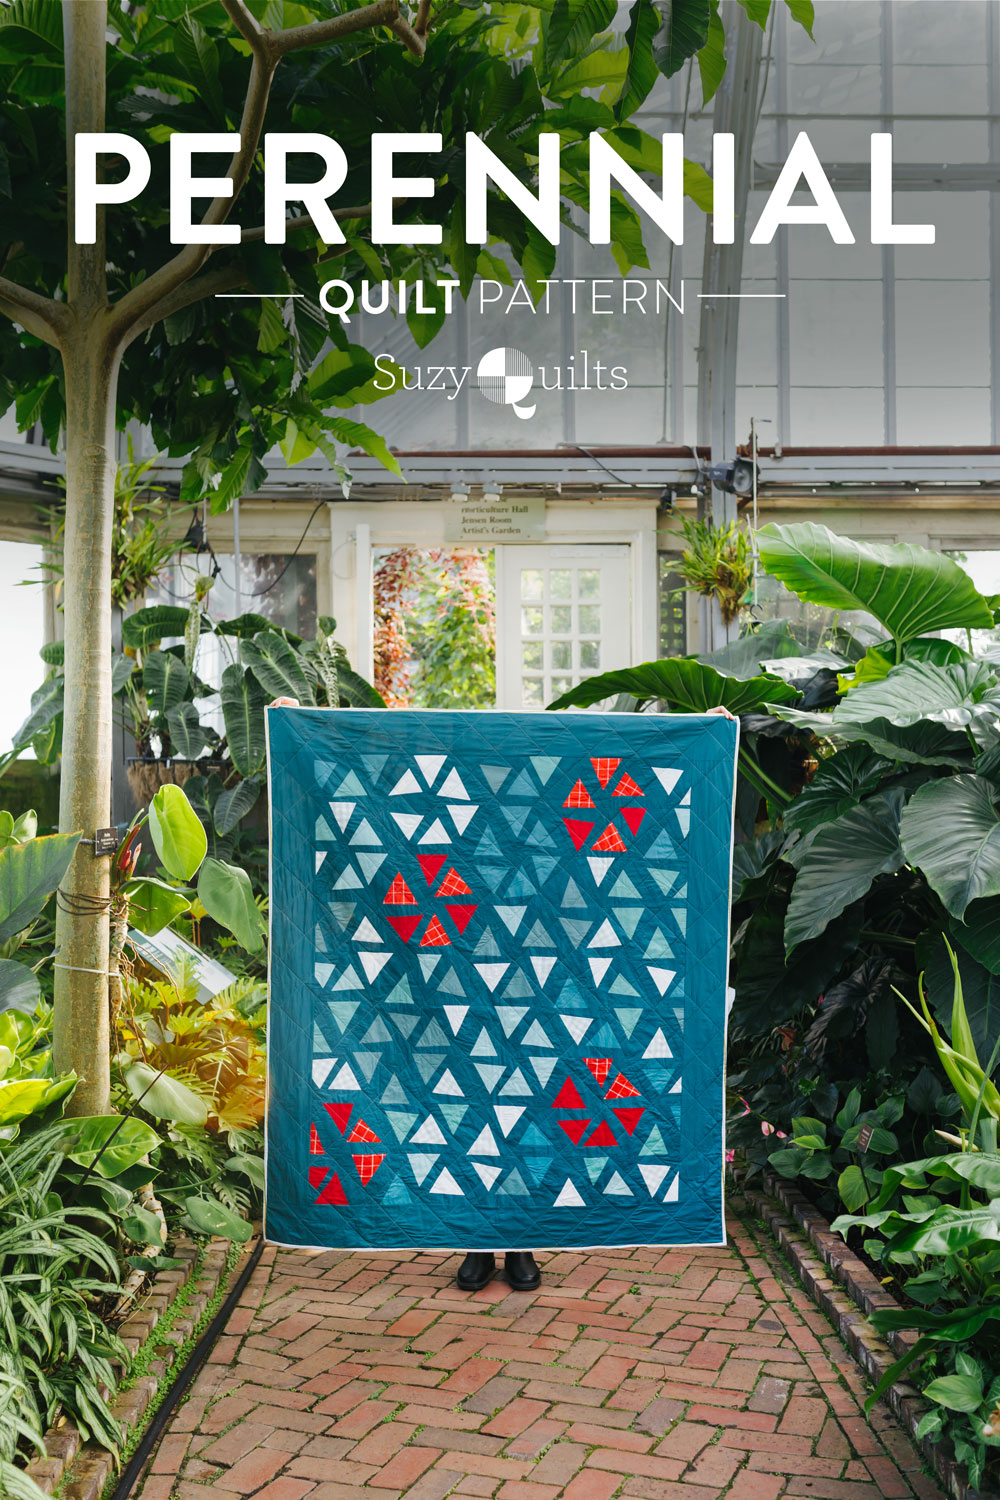 The perfect Christmas quilt pattern! Tips and video tutorials on how to quilt with triangle blocks for the Perennial Quilt by Suzy Quilts   suzyquilts.com #ChristmasQuilt